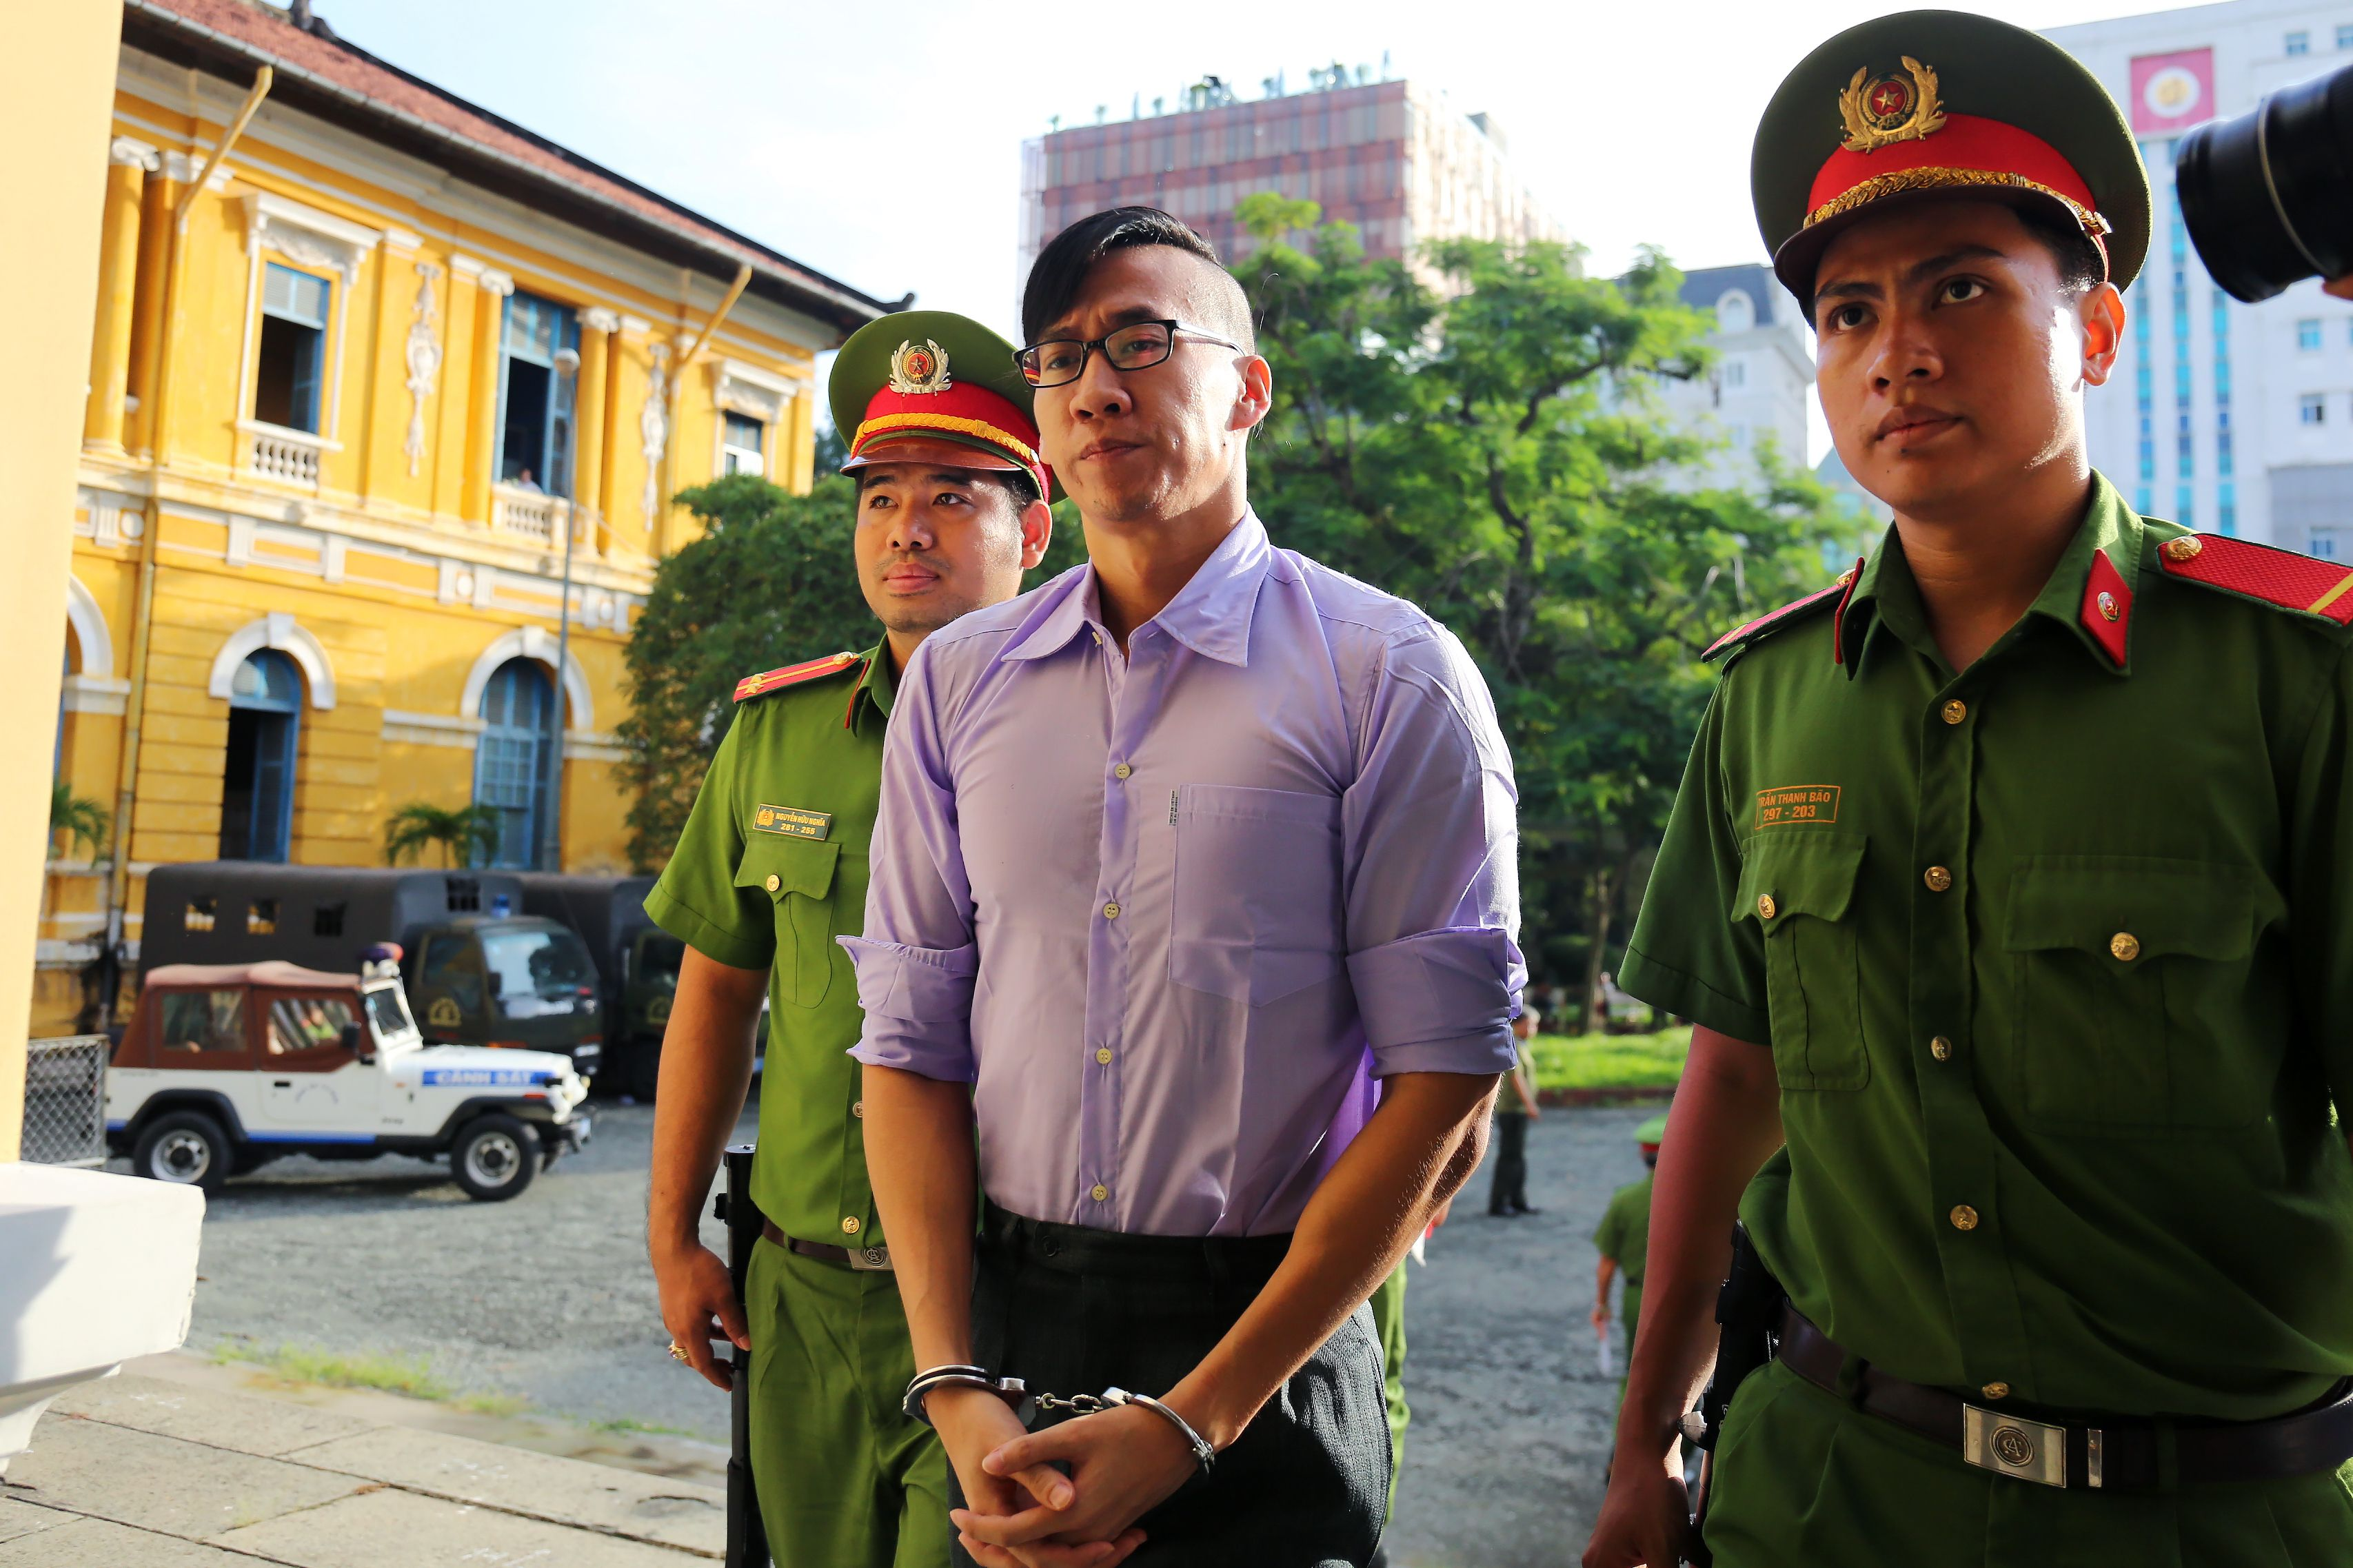 American-Vietnamese citizen William Nguyen is escorted by policemen to a courtroom for his trial in Ho Chi Minh City on July 20, 2018.